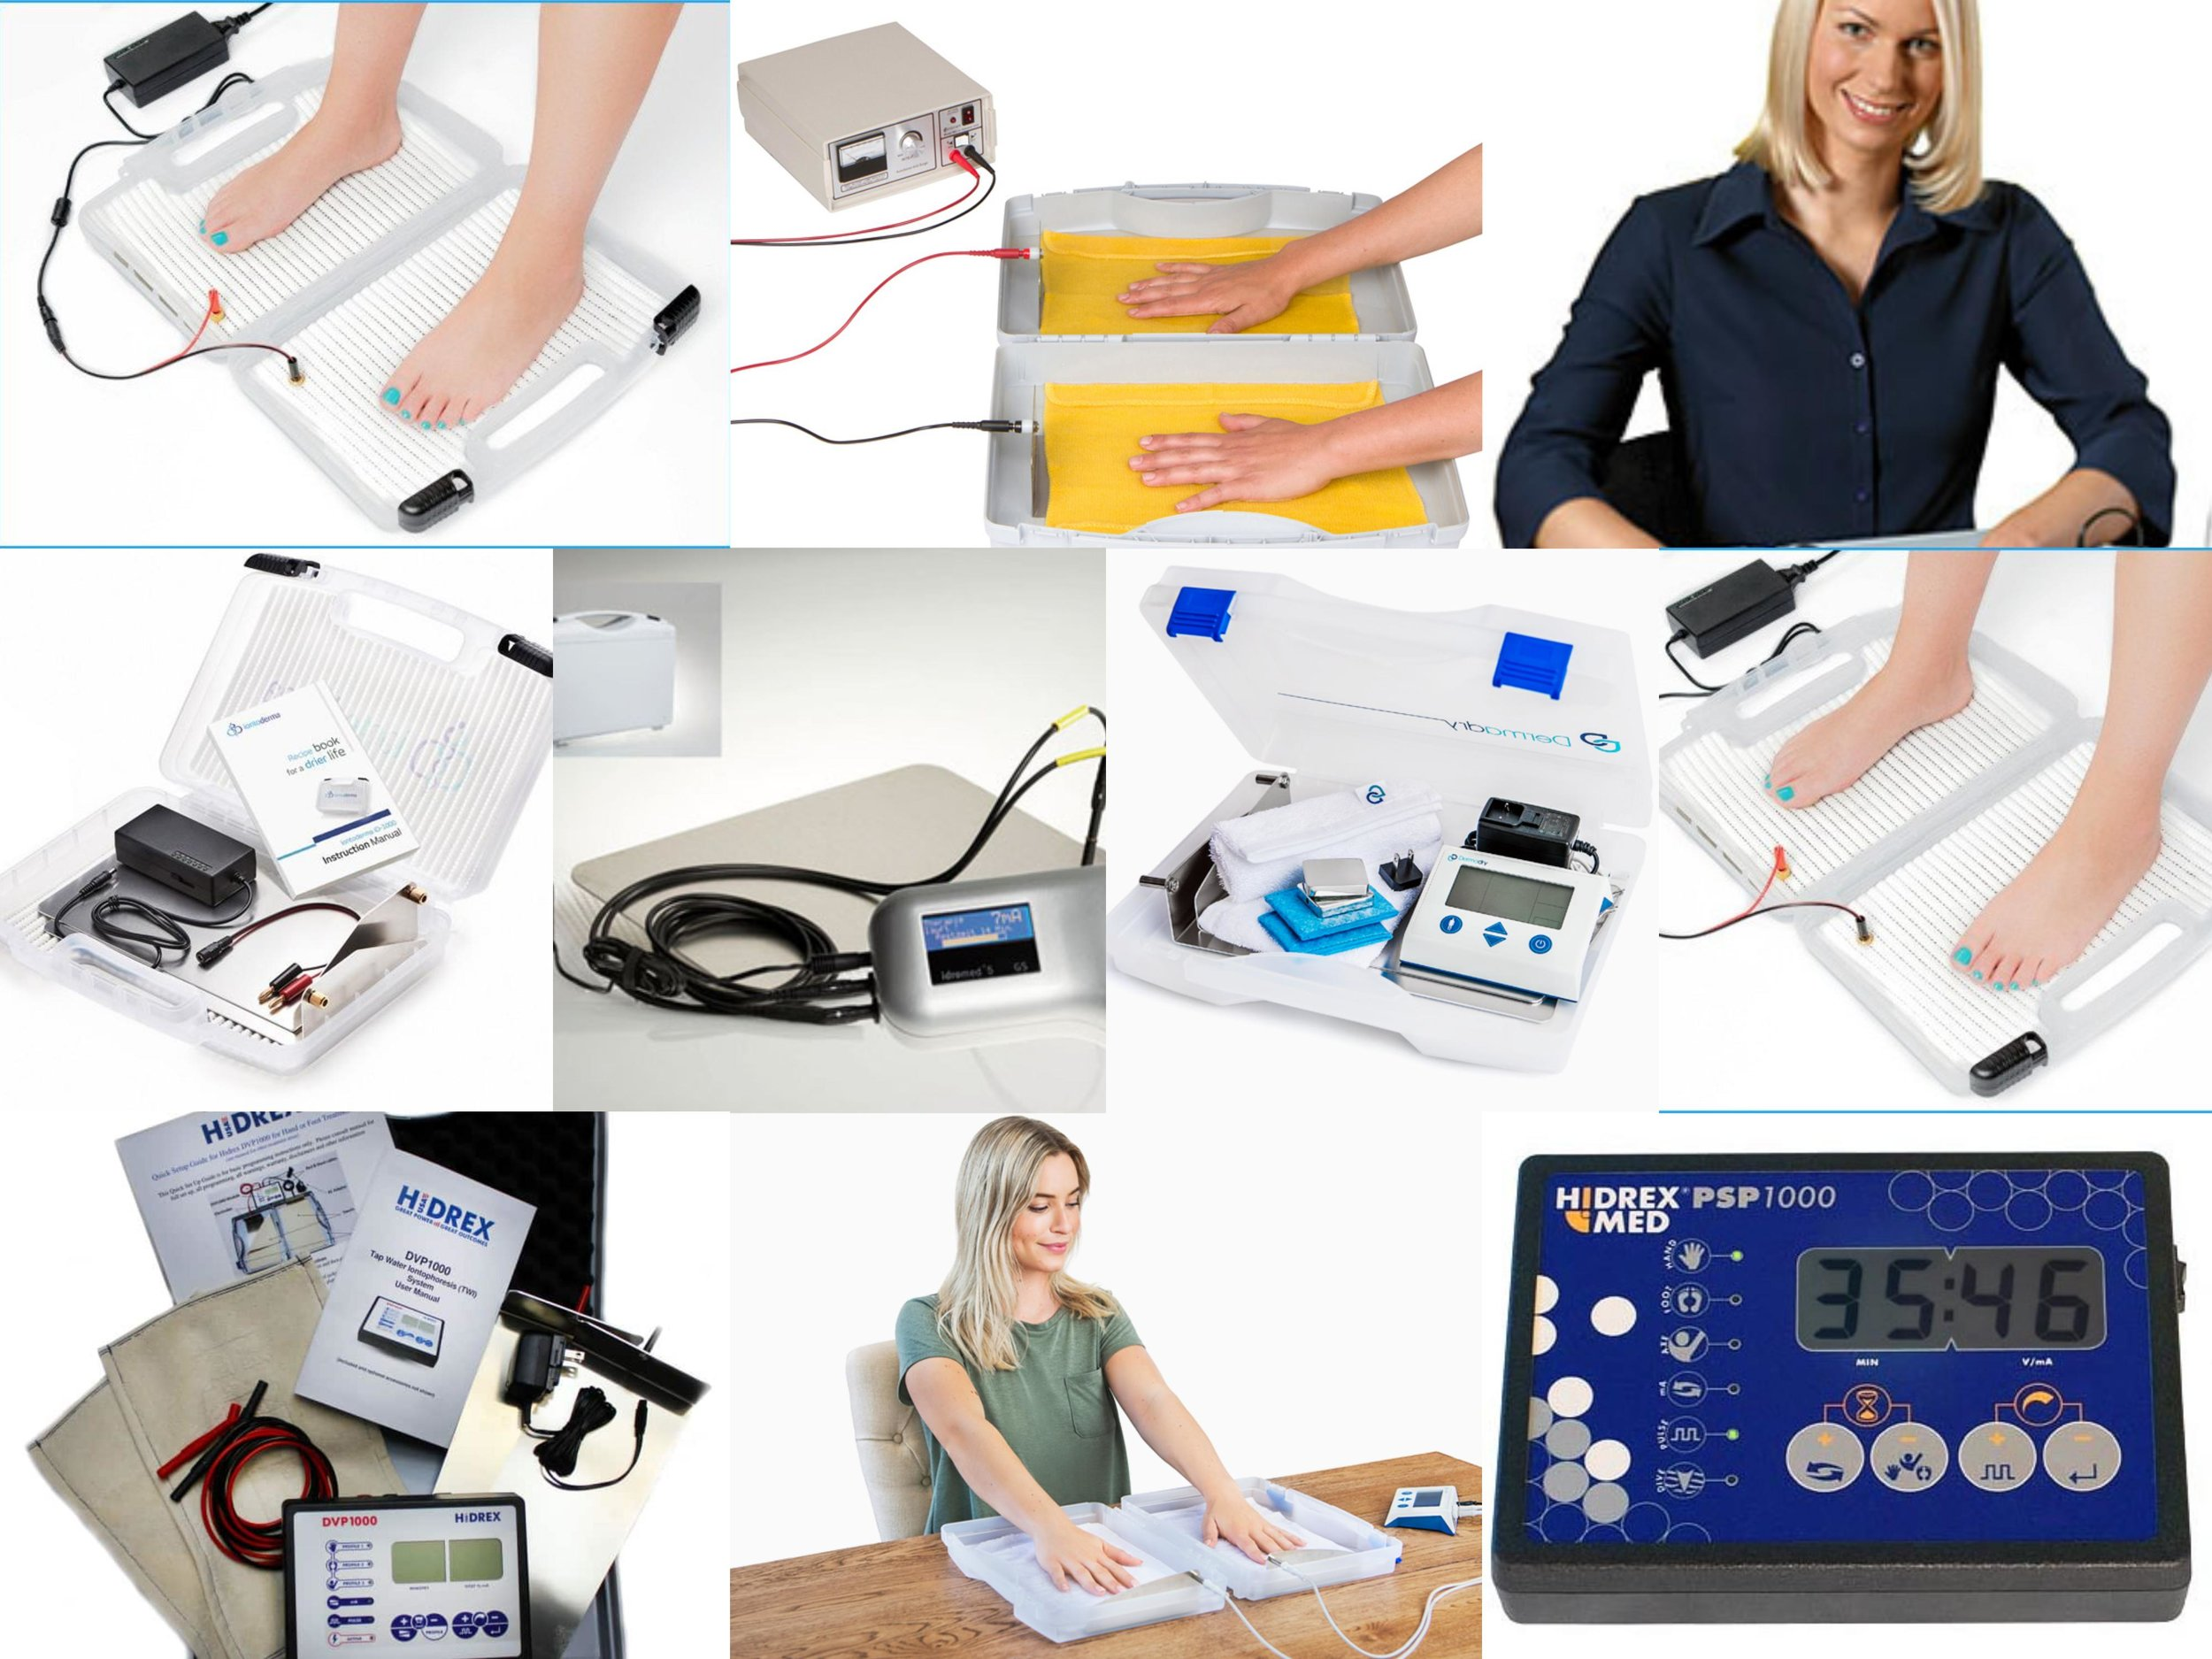 Complete compartion of top Iontophoresis devices - Do you have excessively sweaty hands? Then Iontophoresis treatment is for you. With a home Iontophoresis device, you have dry hands within a week. Click below to see the top devices available.